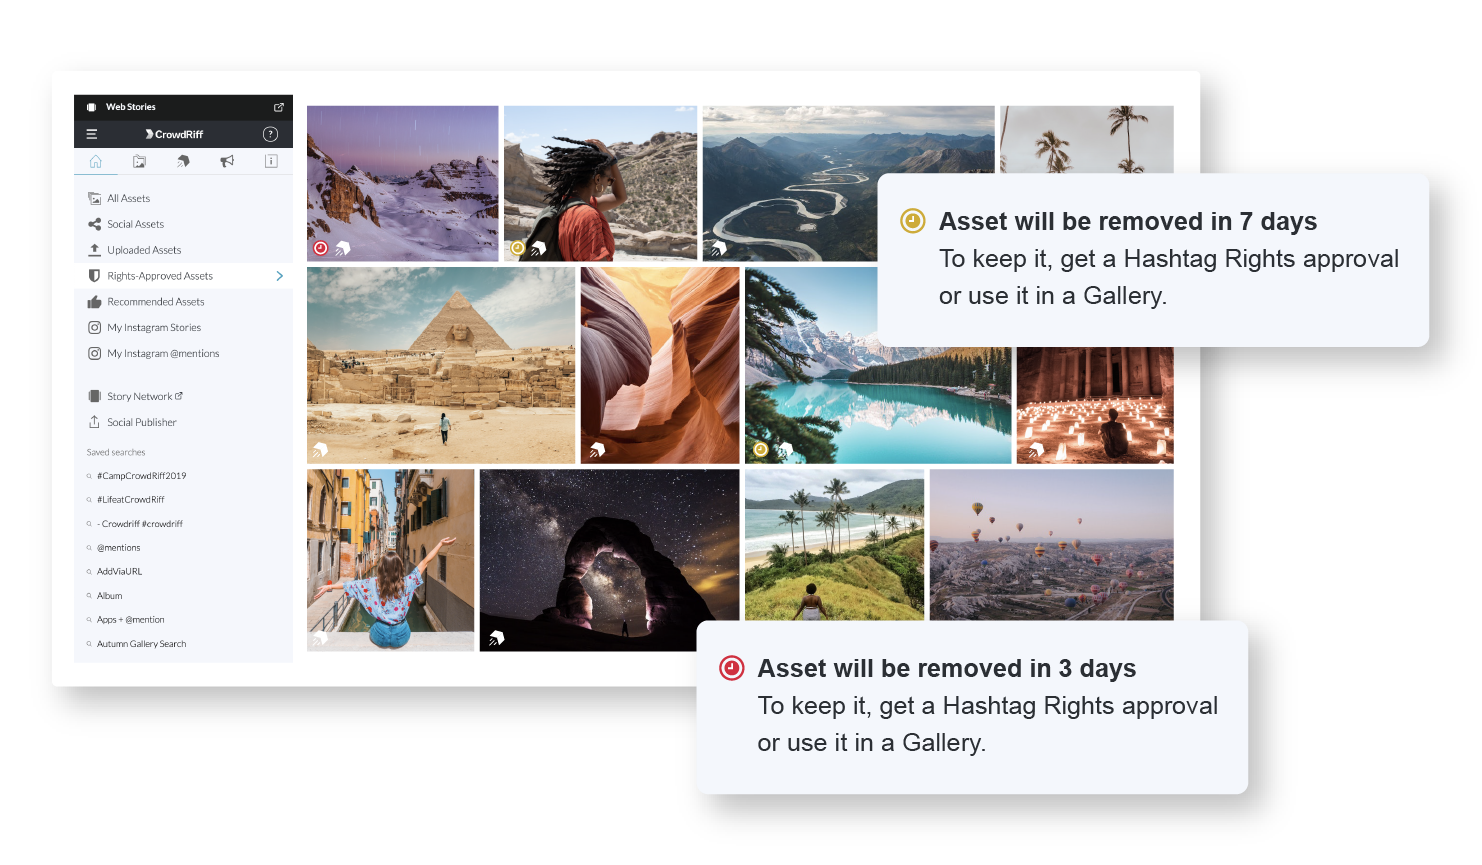 A screenshot of the CrowdRiff platform highlighting that images sourced from Sidekick will be removed after seven days unless they get Hashtag Rights or are used in a Gallery